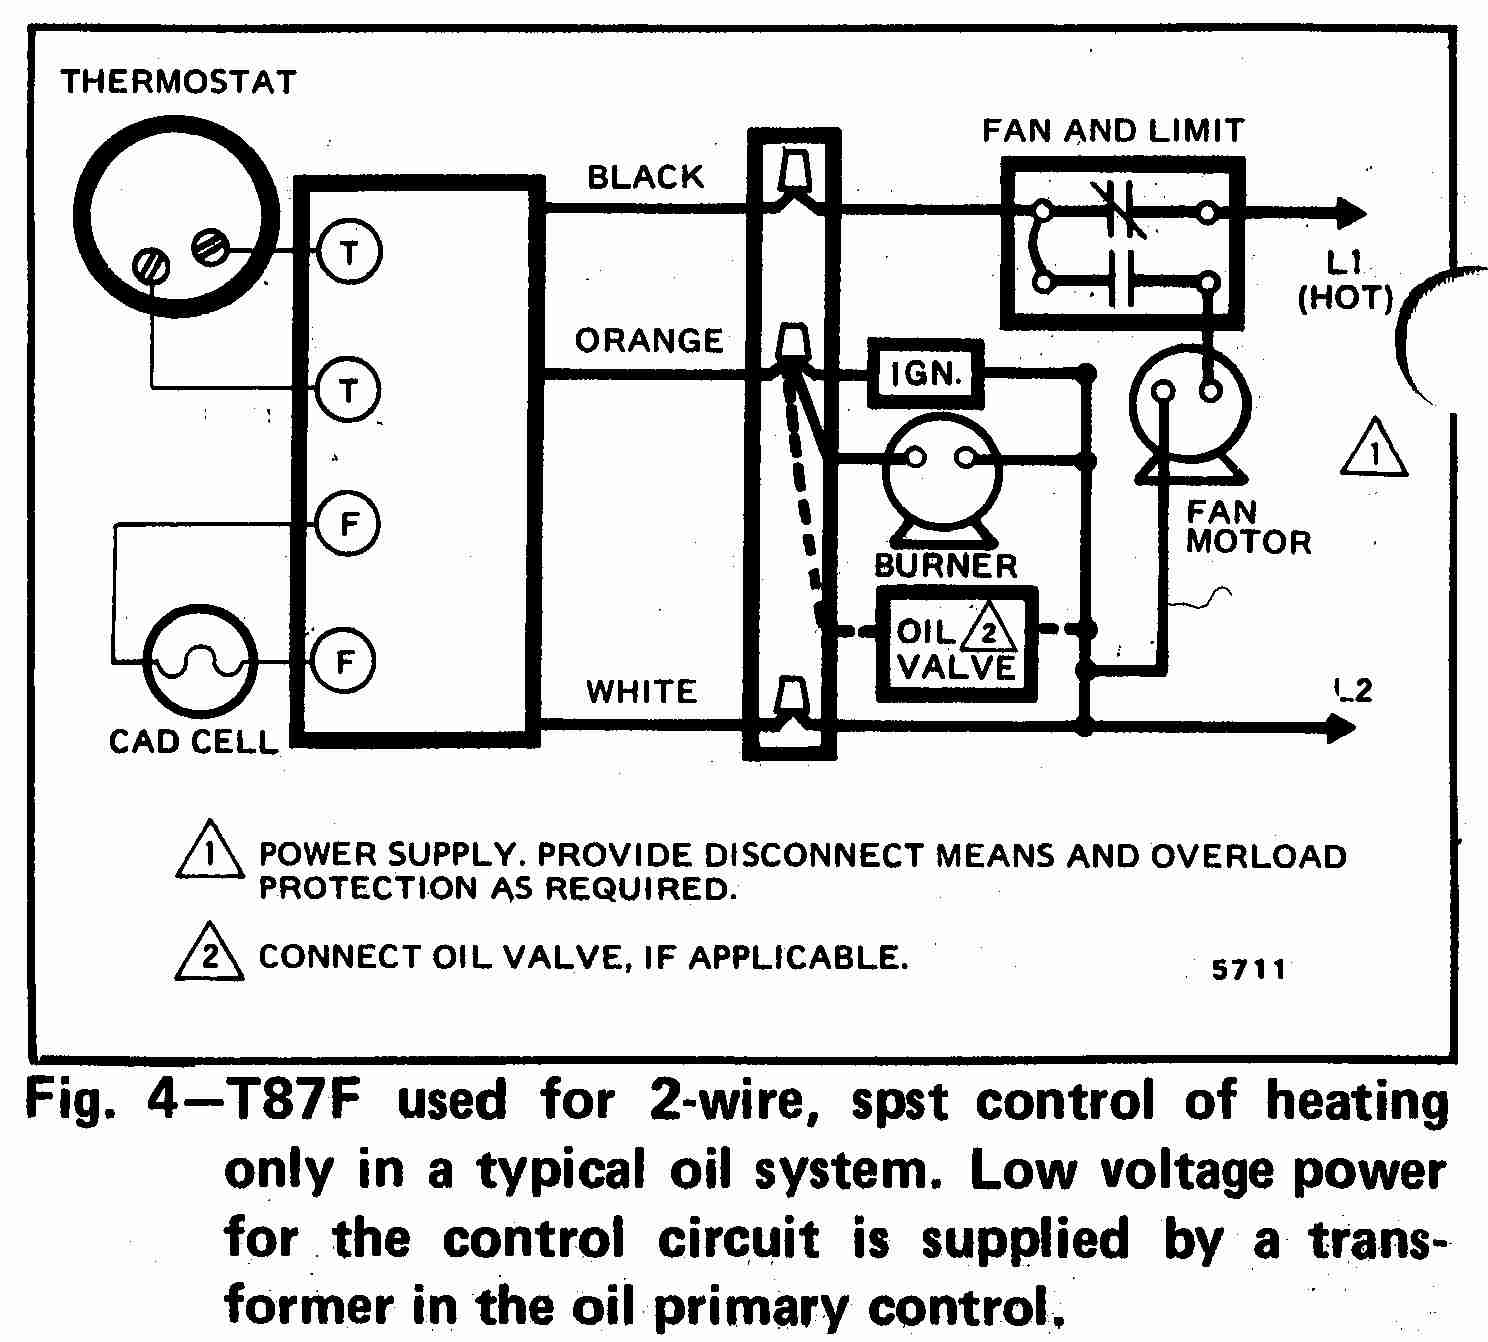 Thermostats wiring diagram wiring diagrams schematics room thermostat wiring diagrams for hvac systems honeywell t87f thermostat wiring diagram for 2 wire spst control of heating only in at heater wiring cheapraybanclubmaster Images